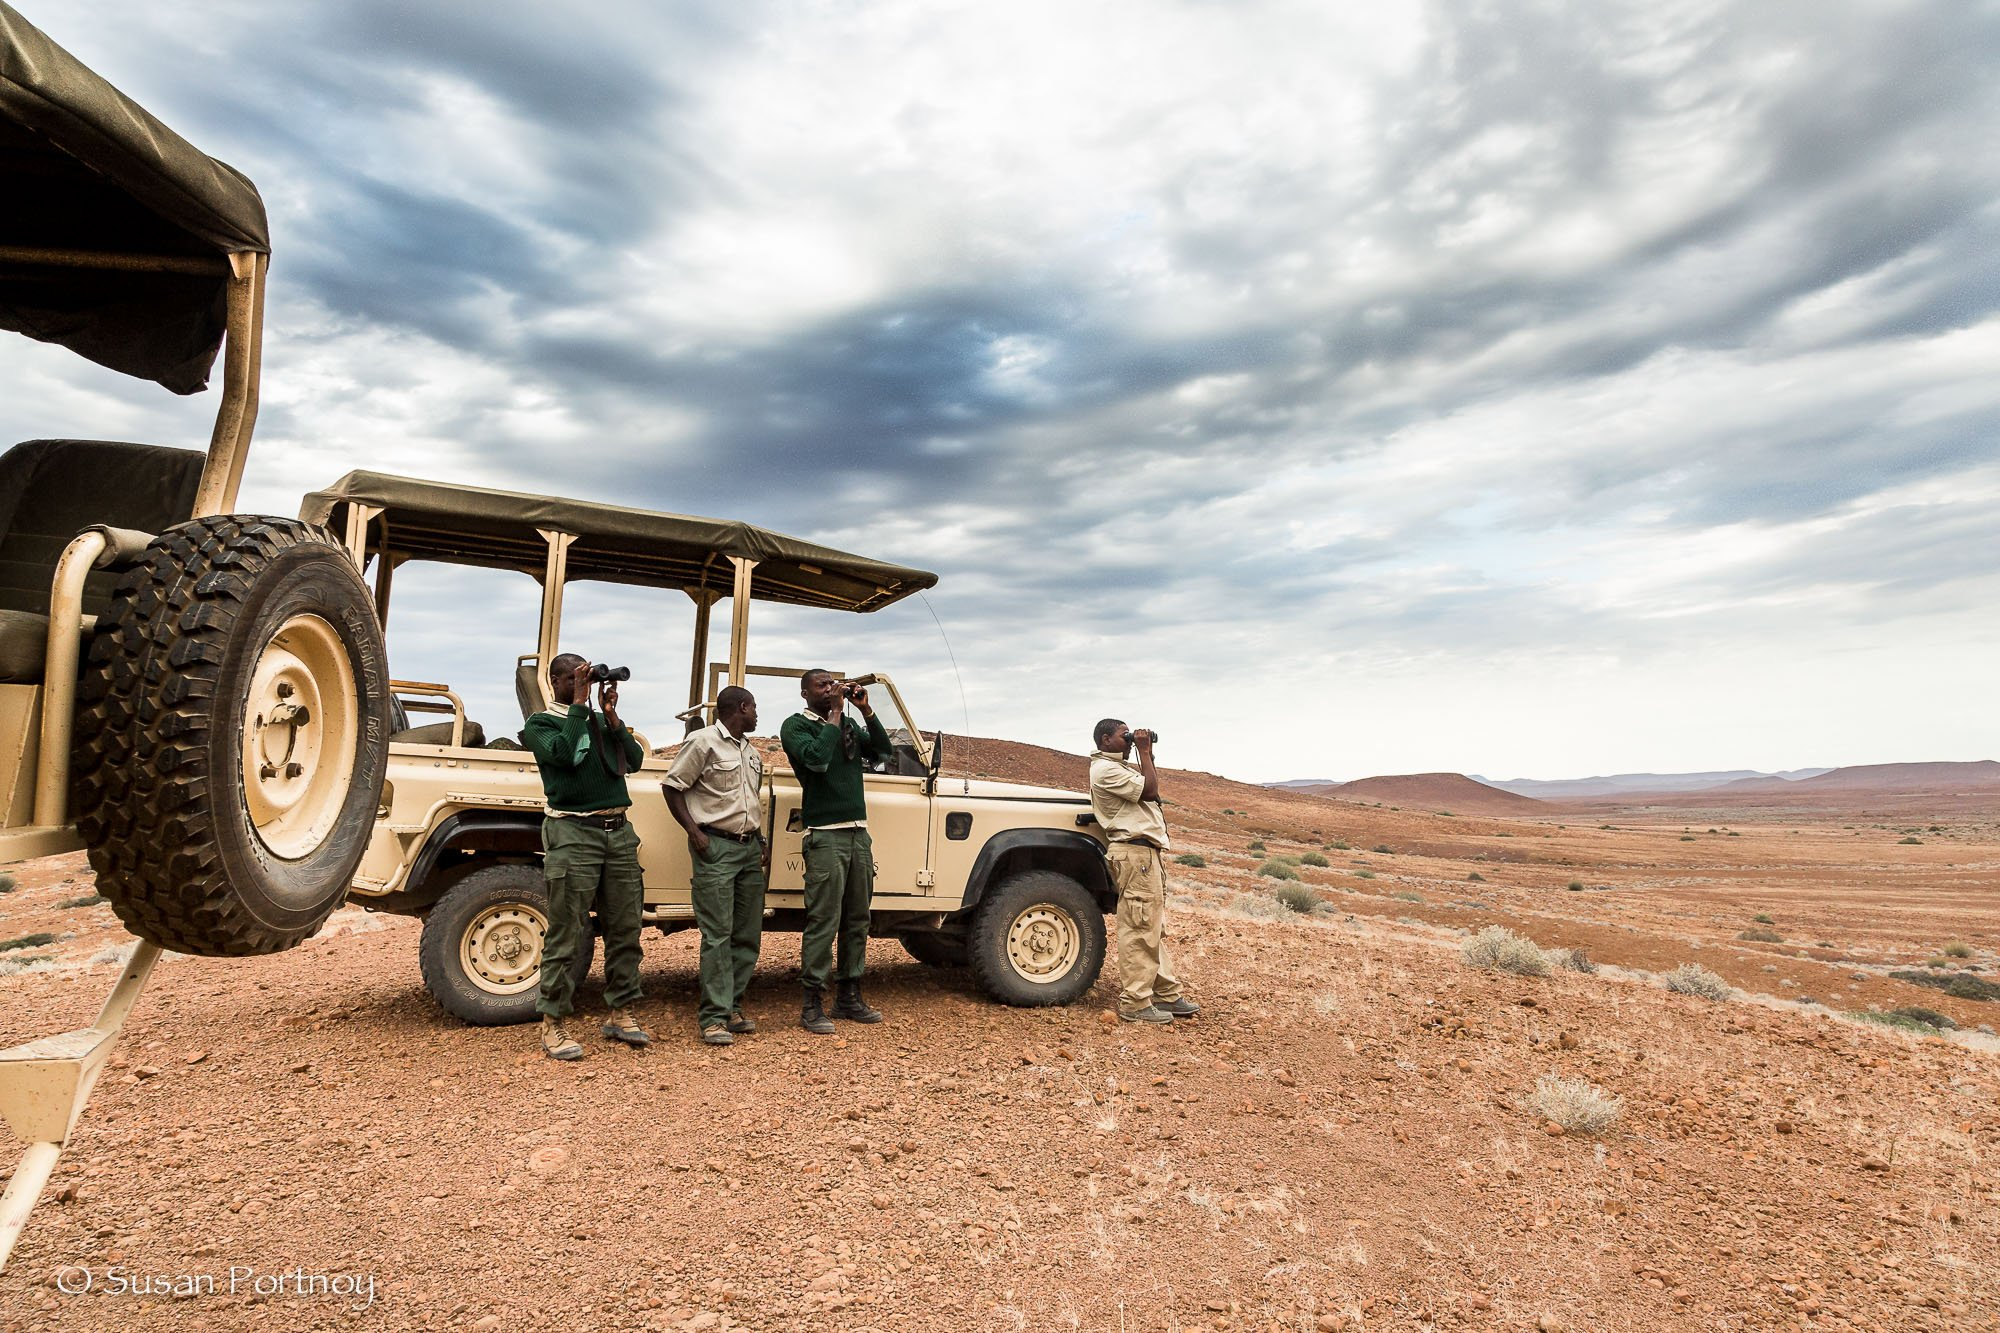 Three Save the Rhino Trust rangers and my guide Bons Roman